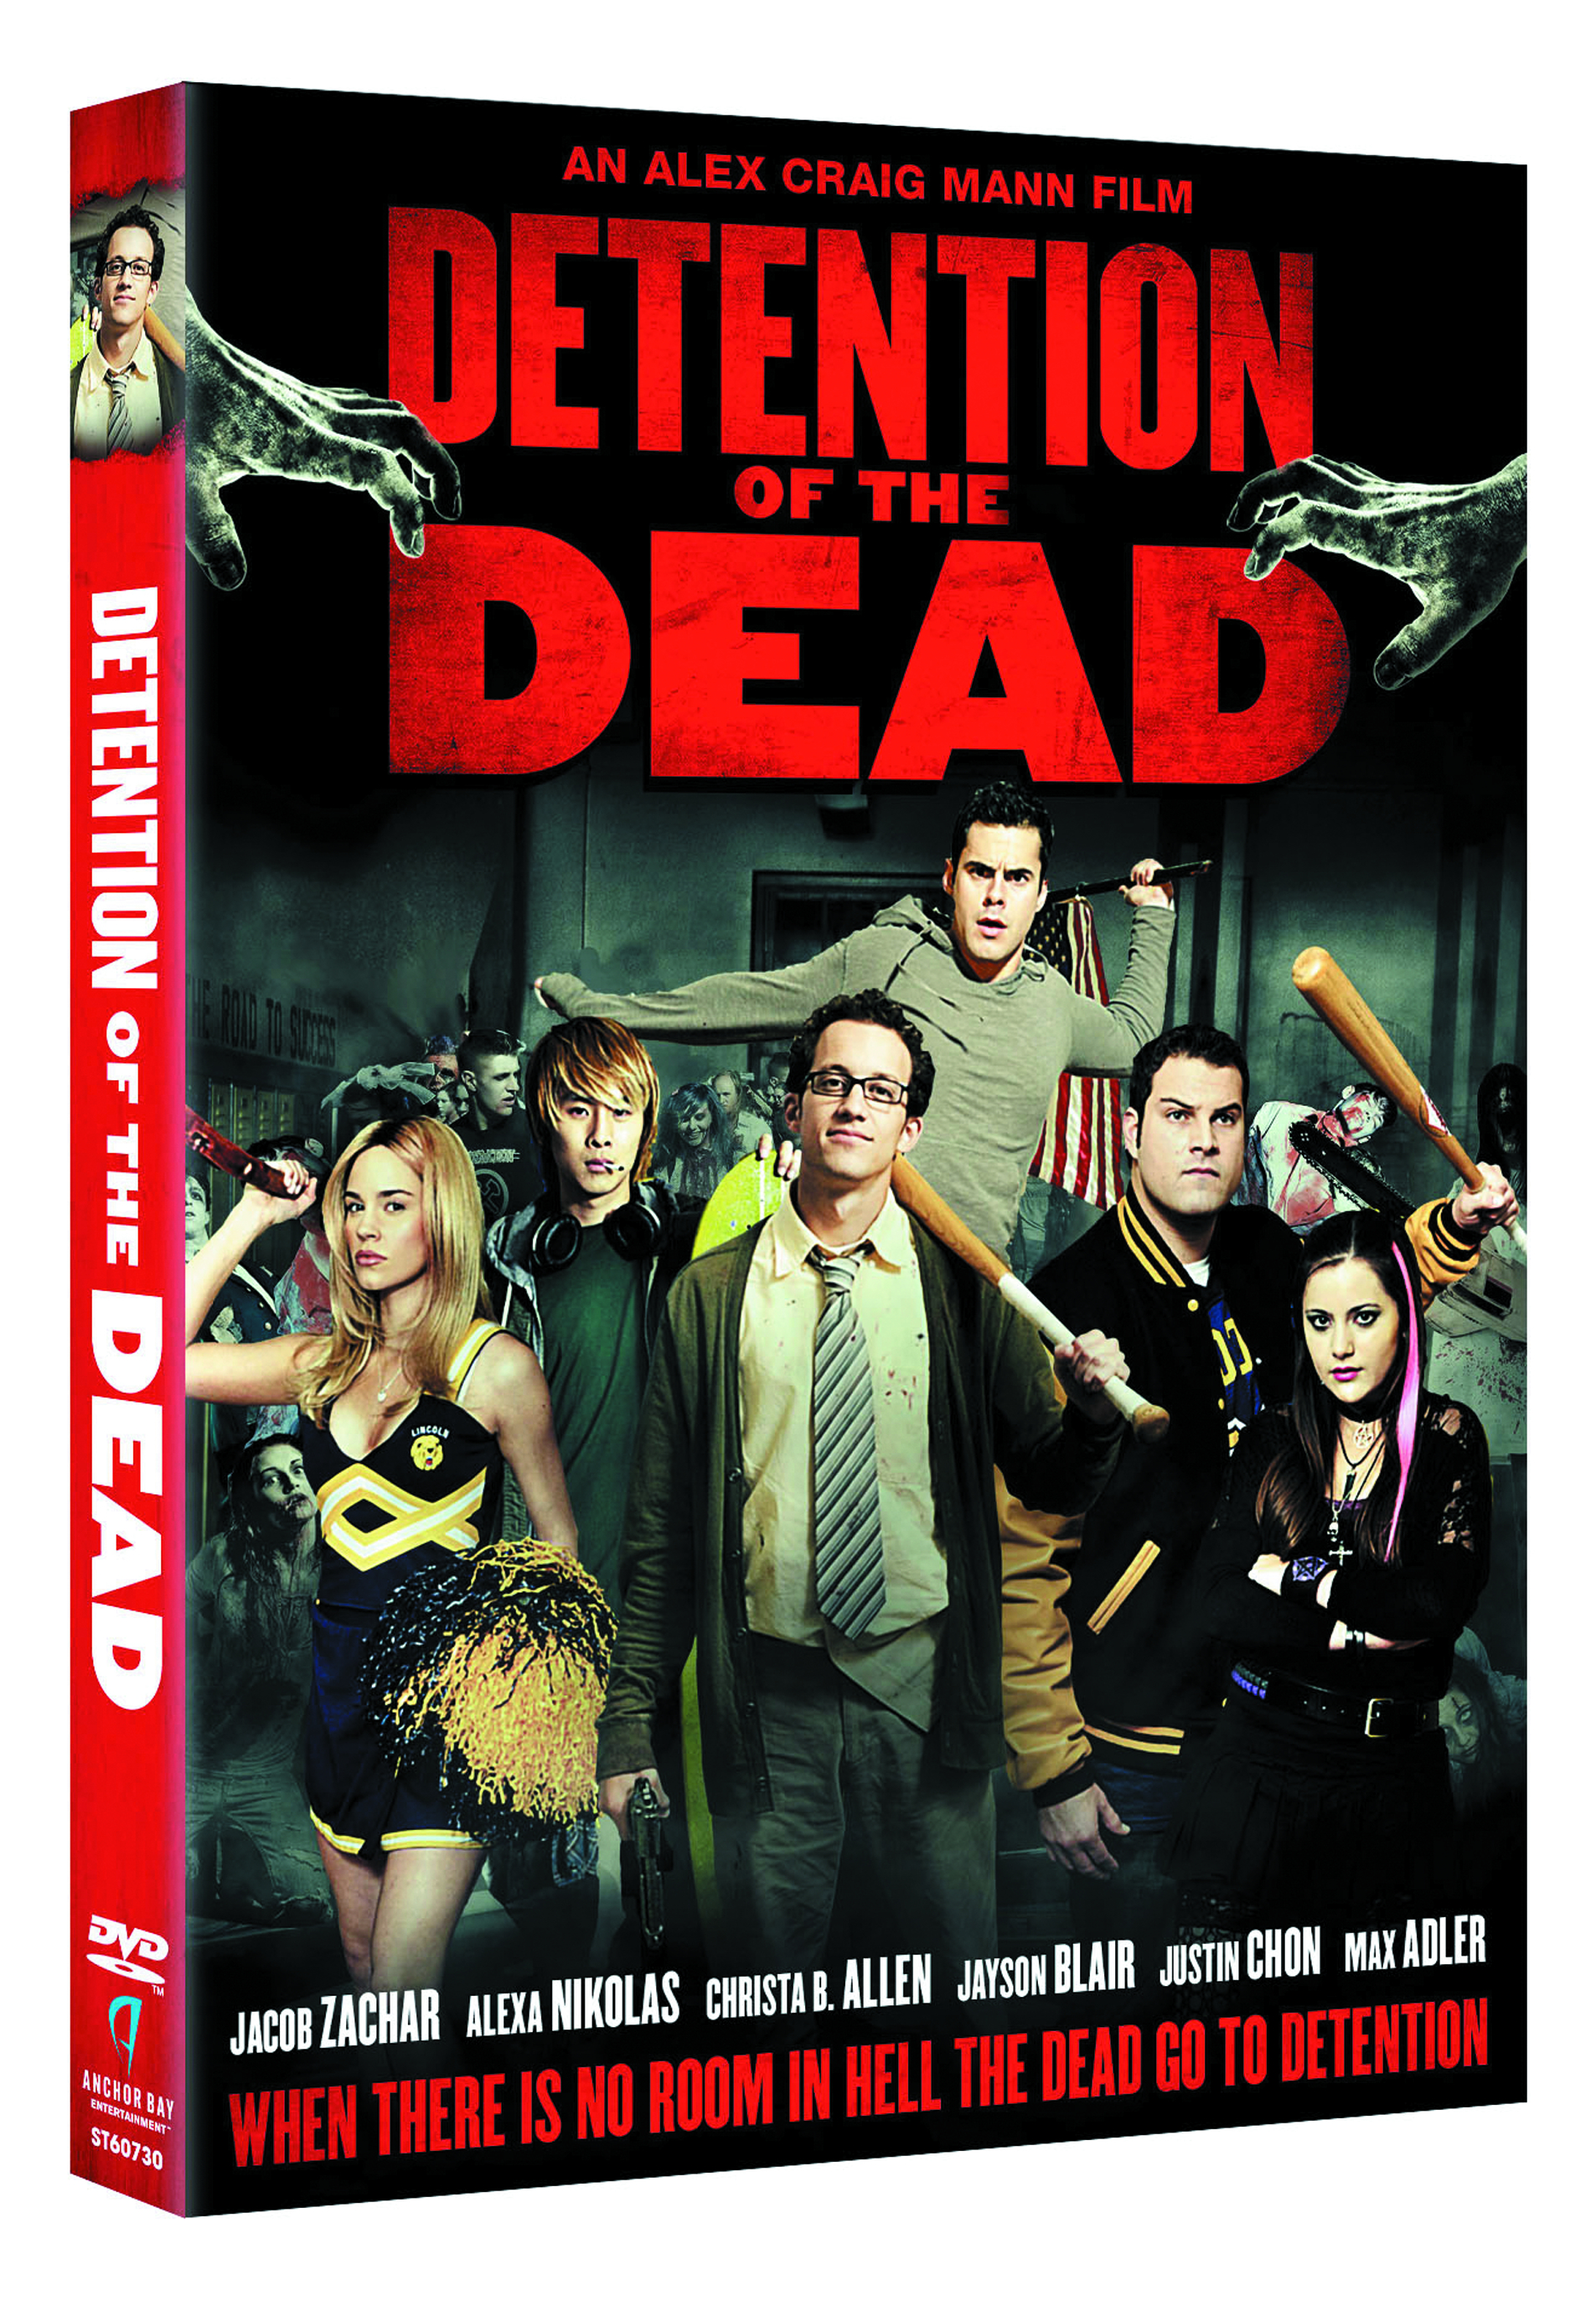 DETENTION OF THE DEAD DVD